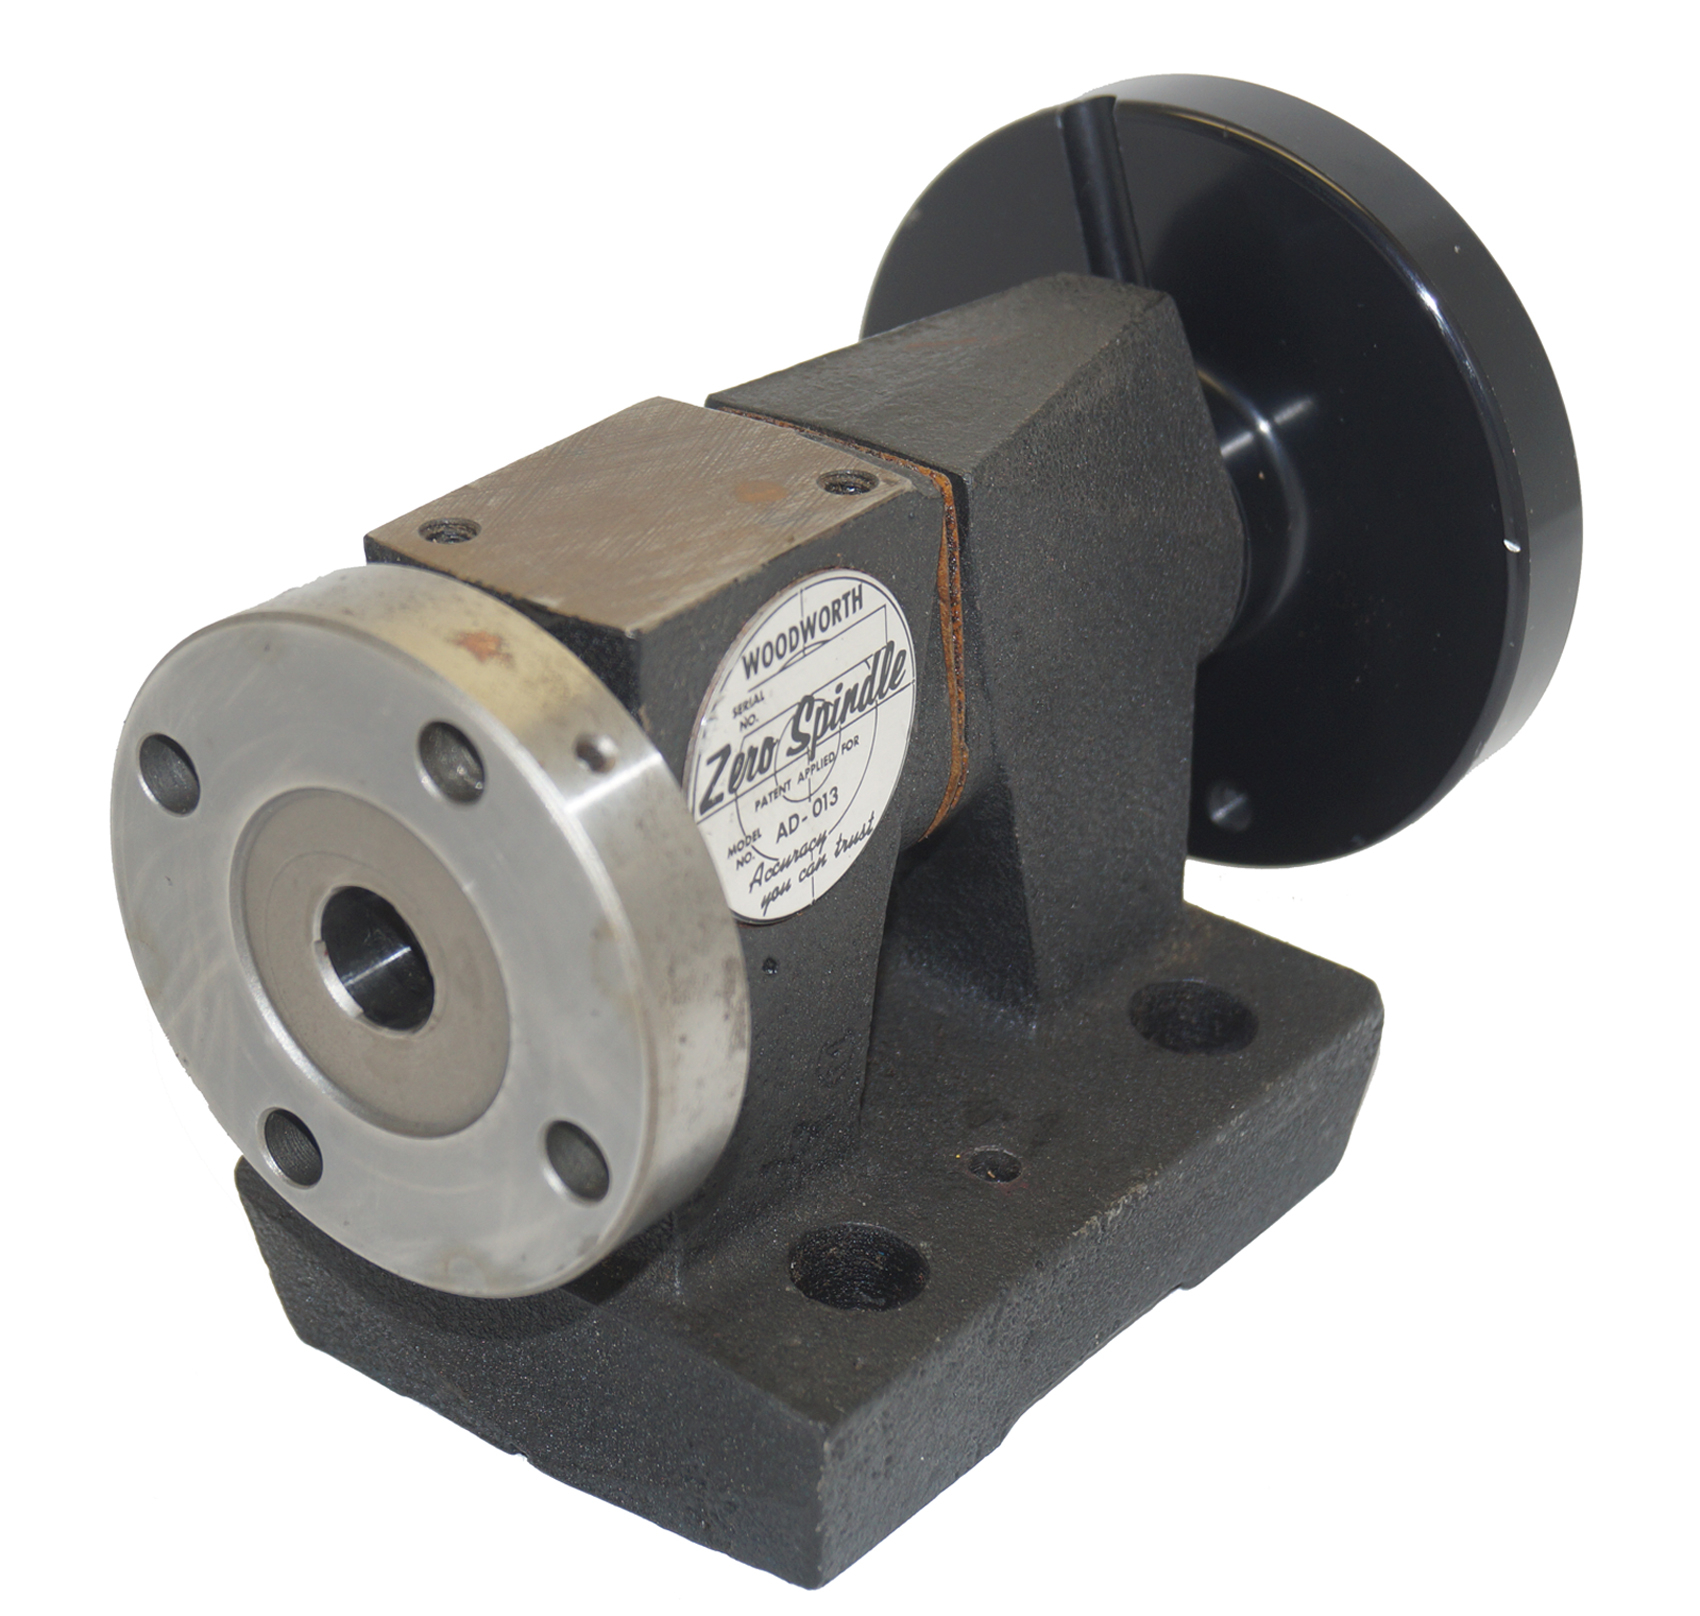 Woodworth AD-013 Zero Spindle